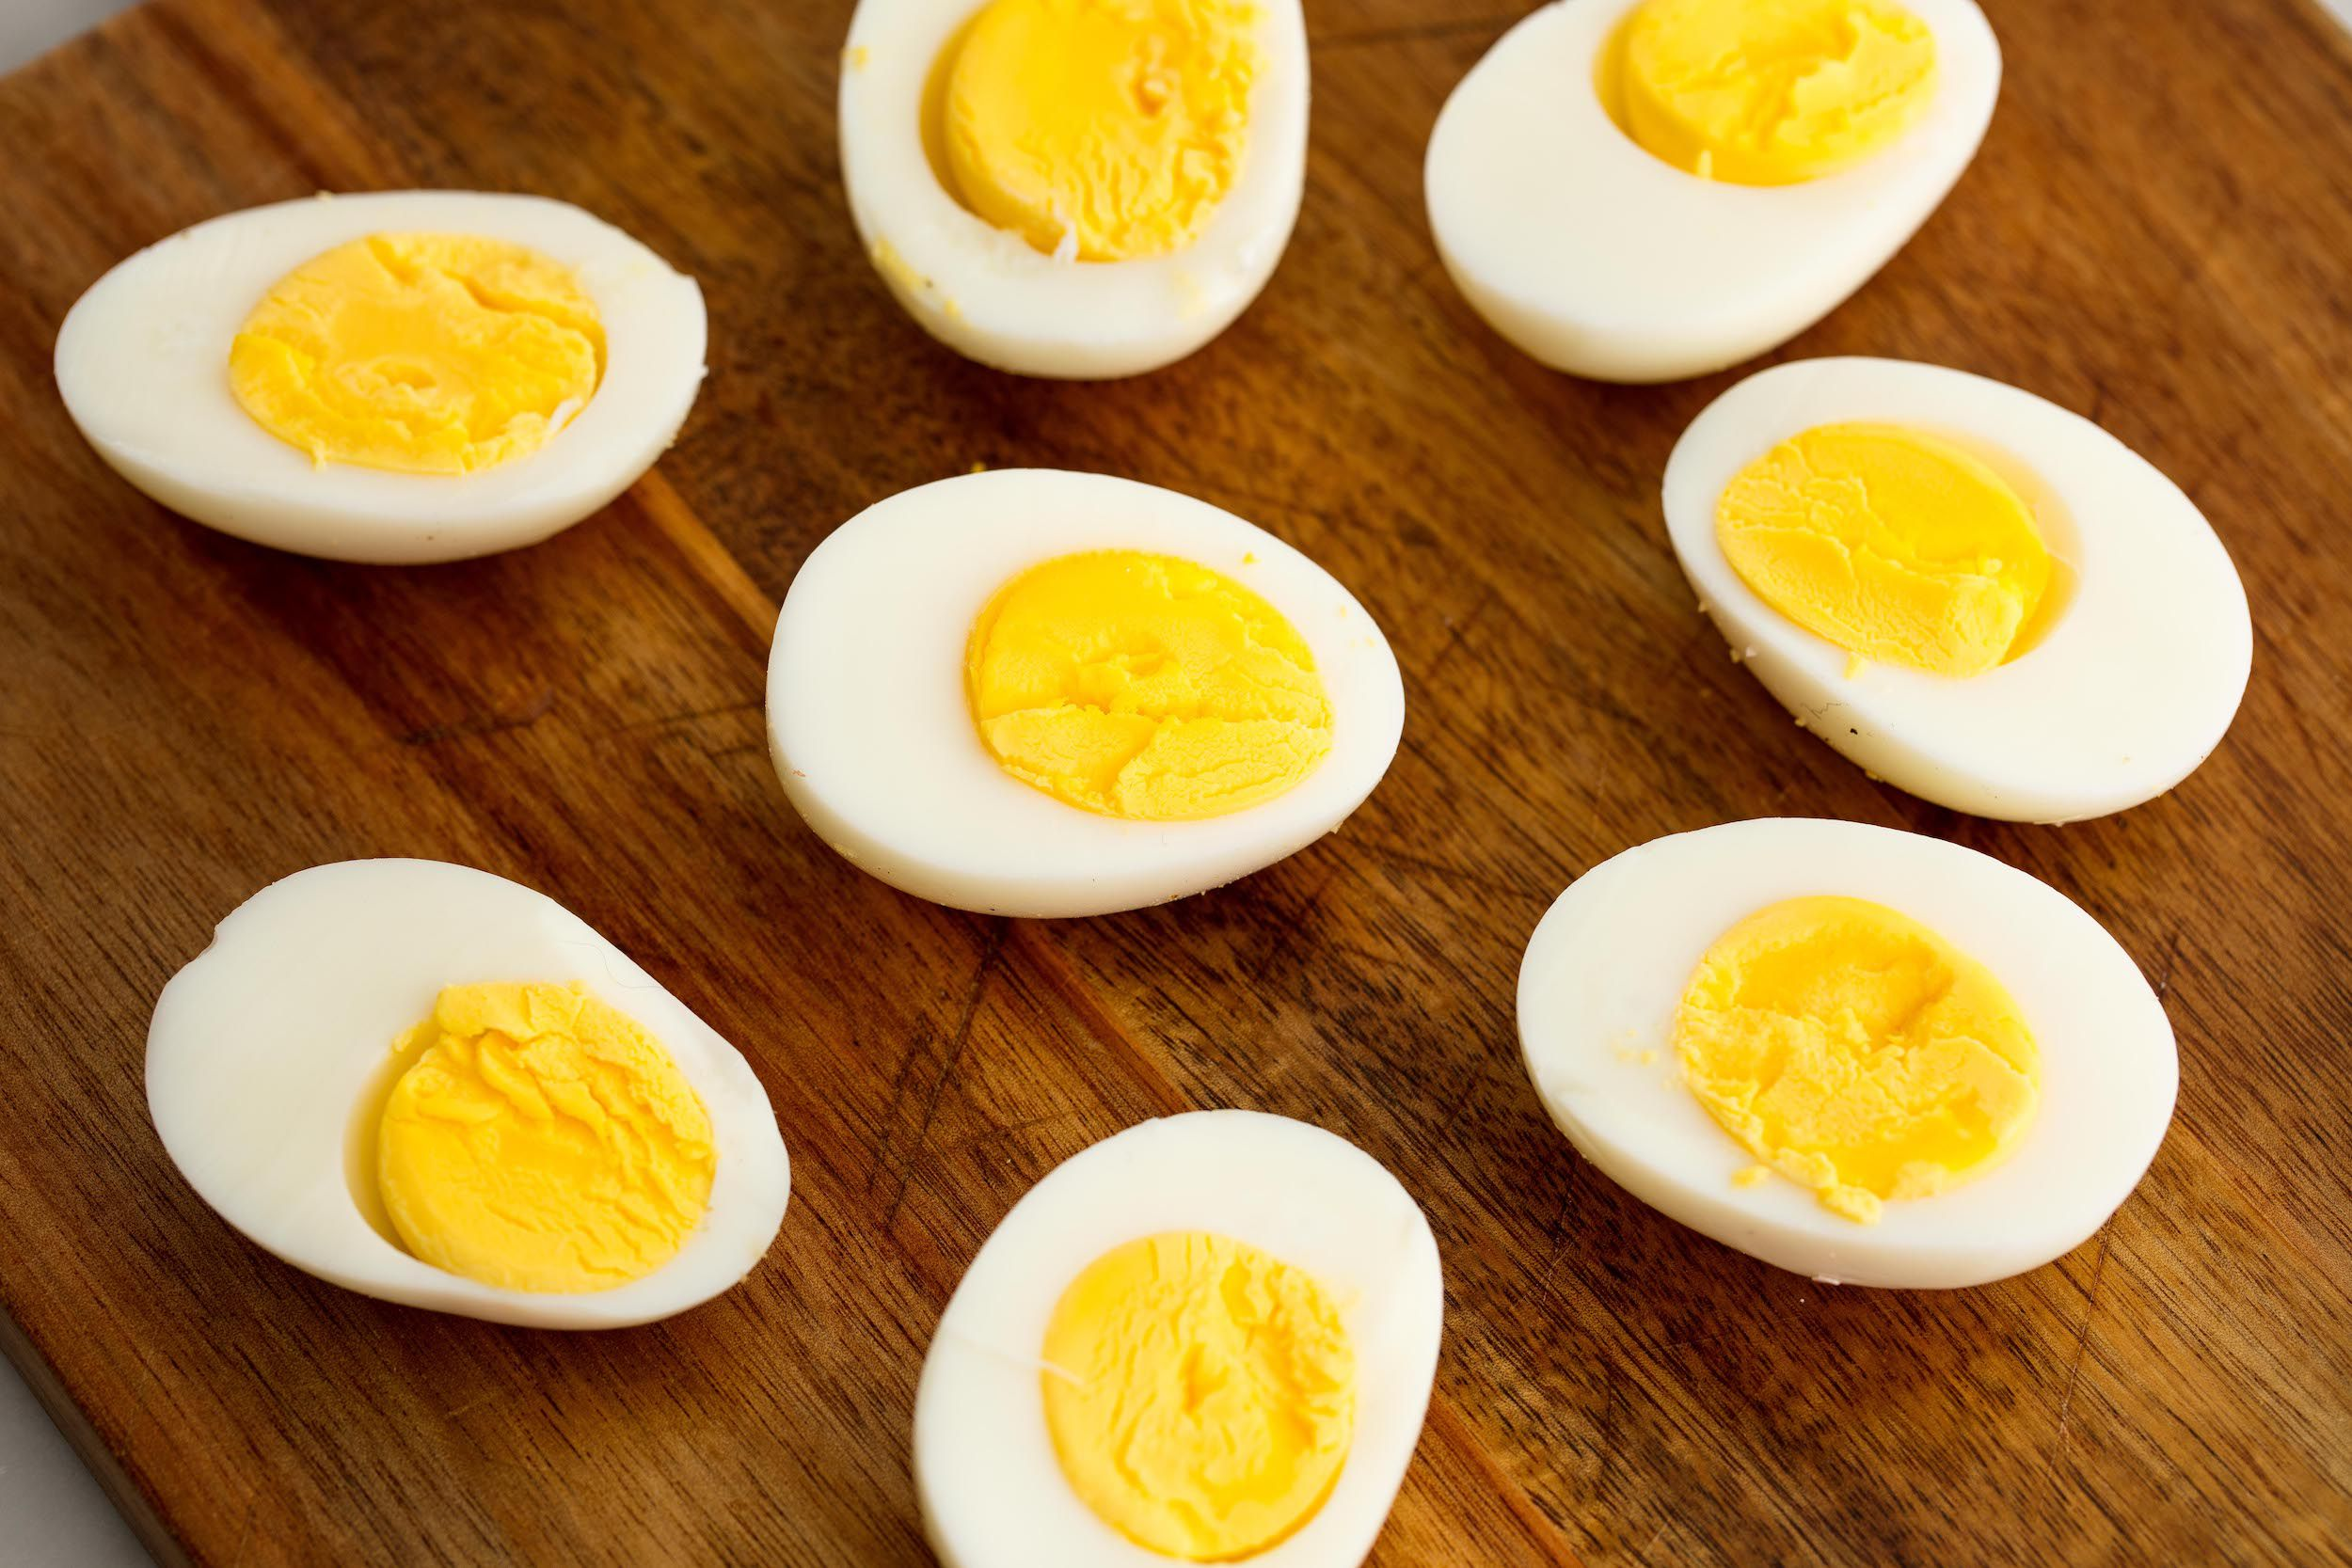 How to Make Hard Boiled Eggs, Perfectly - Best Hard-Boiled Egg Recipe